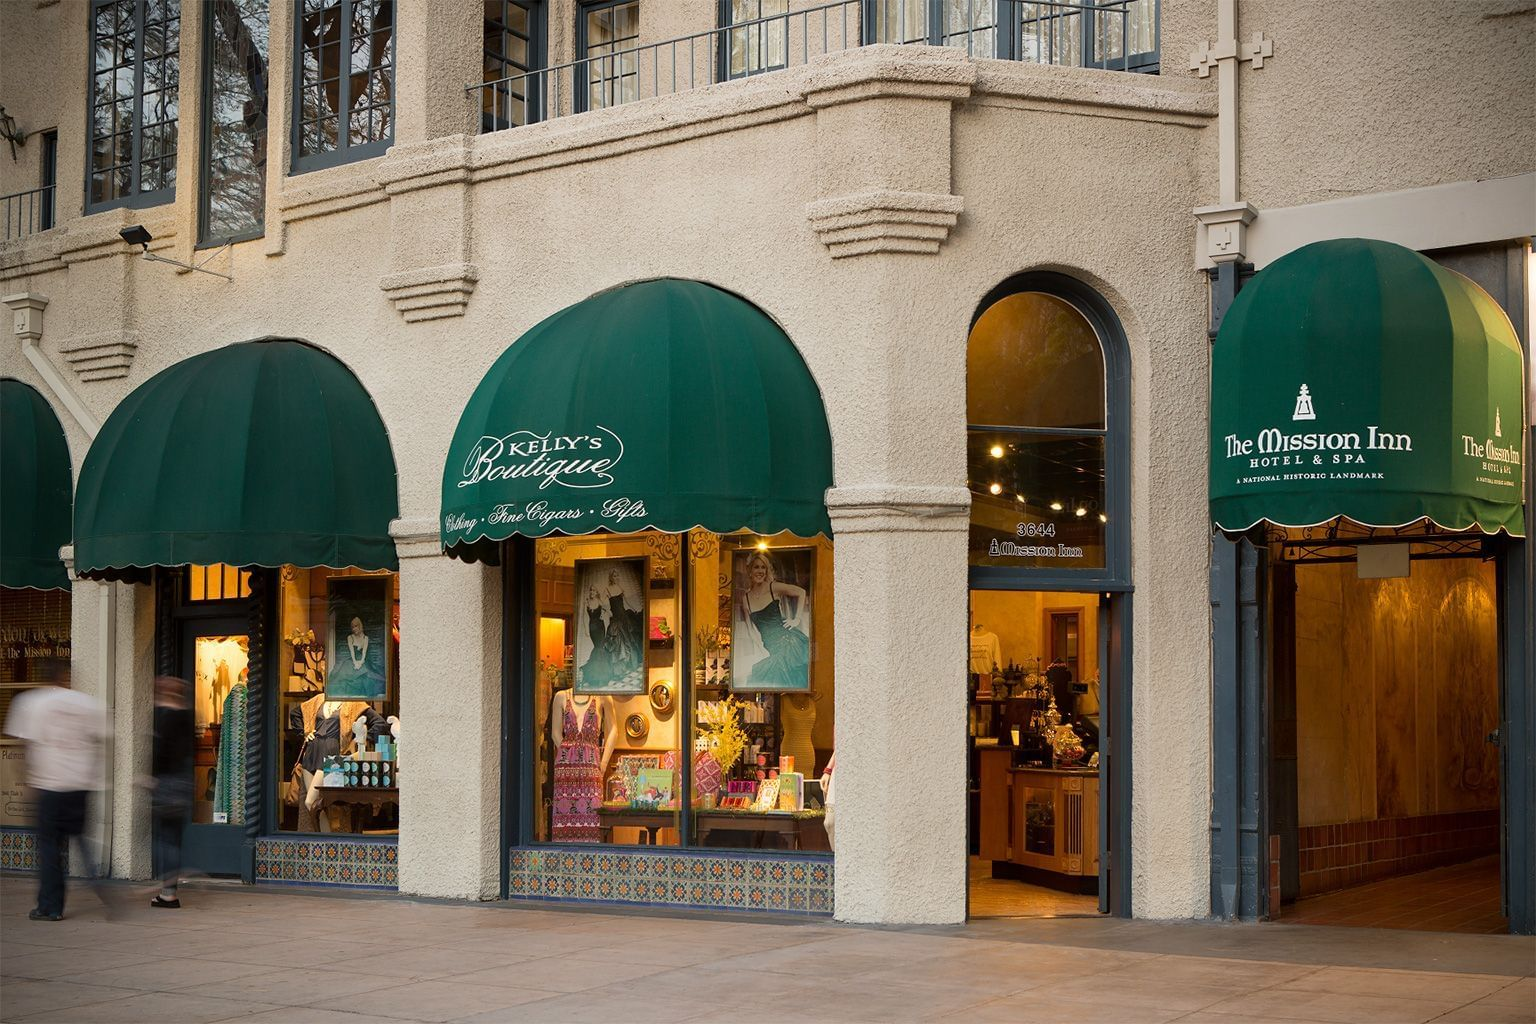 exterior of Mission Inn Hotel & Spa shopping